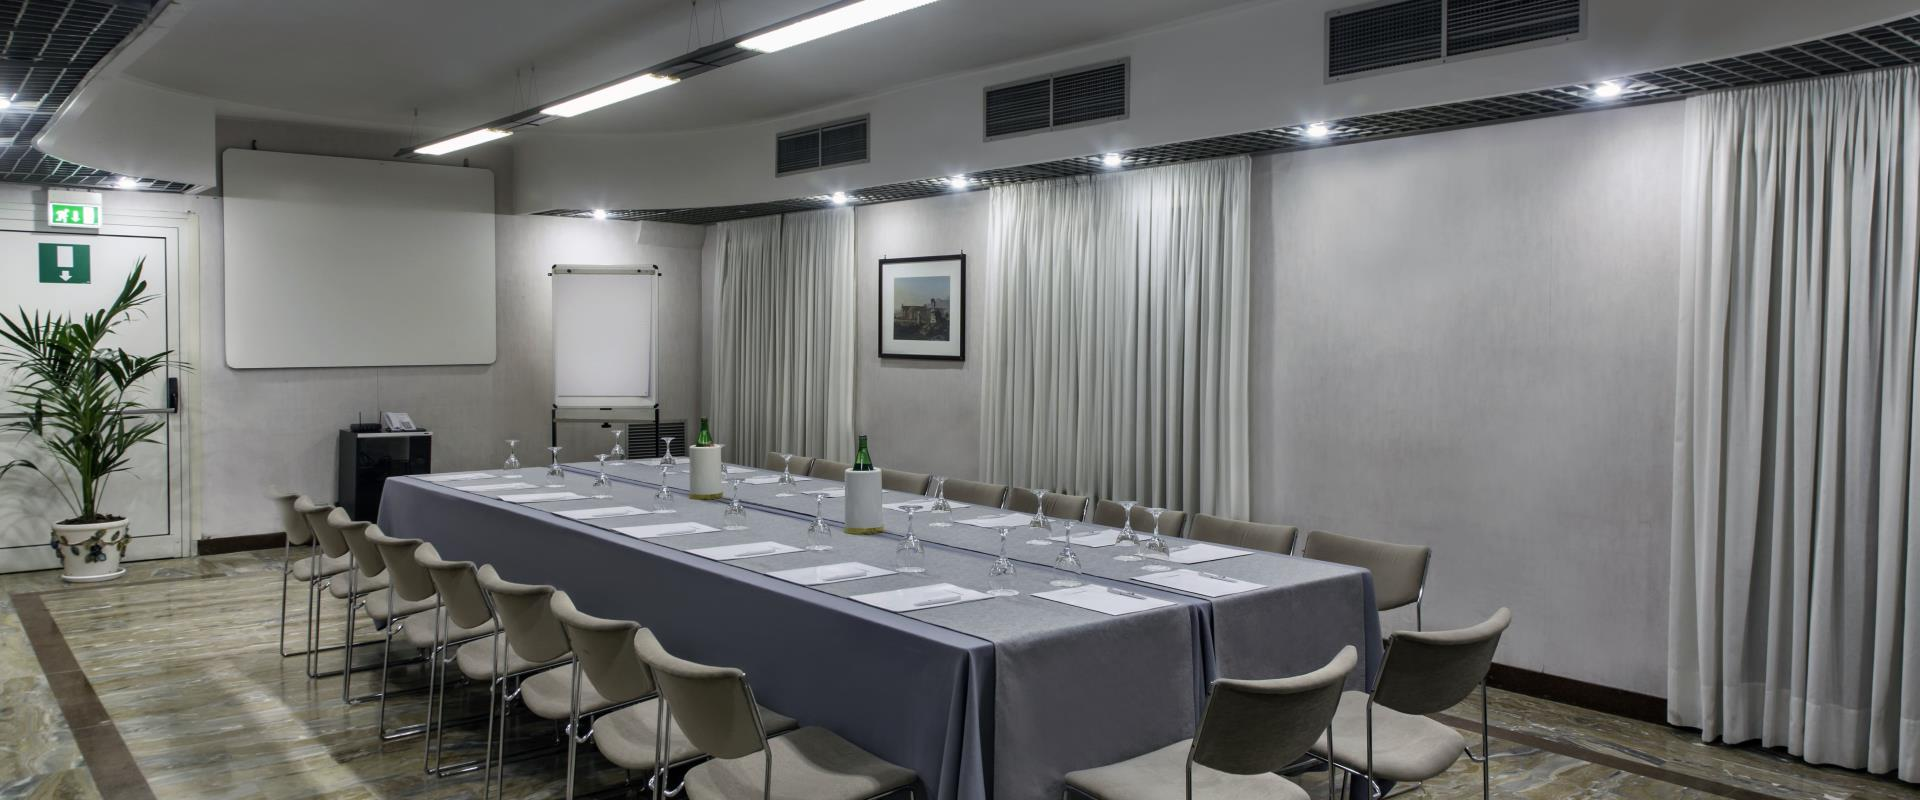 Procida Meeting Room met Imperial Table Hotel Paradiso Napels